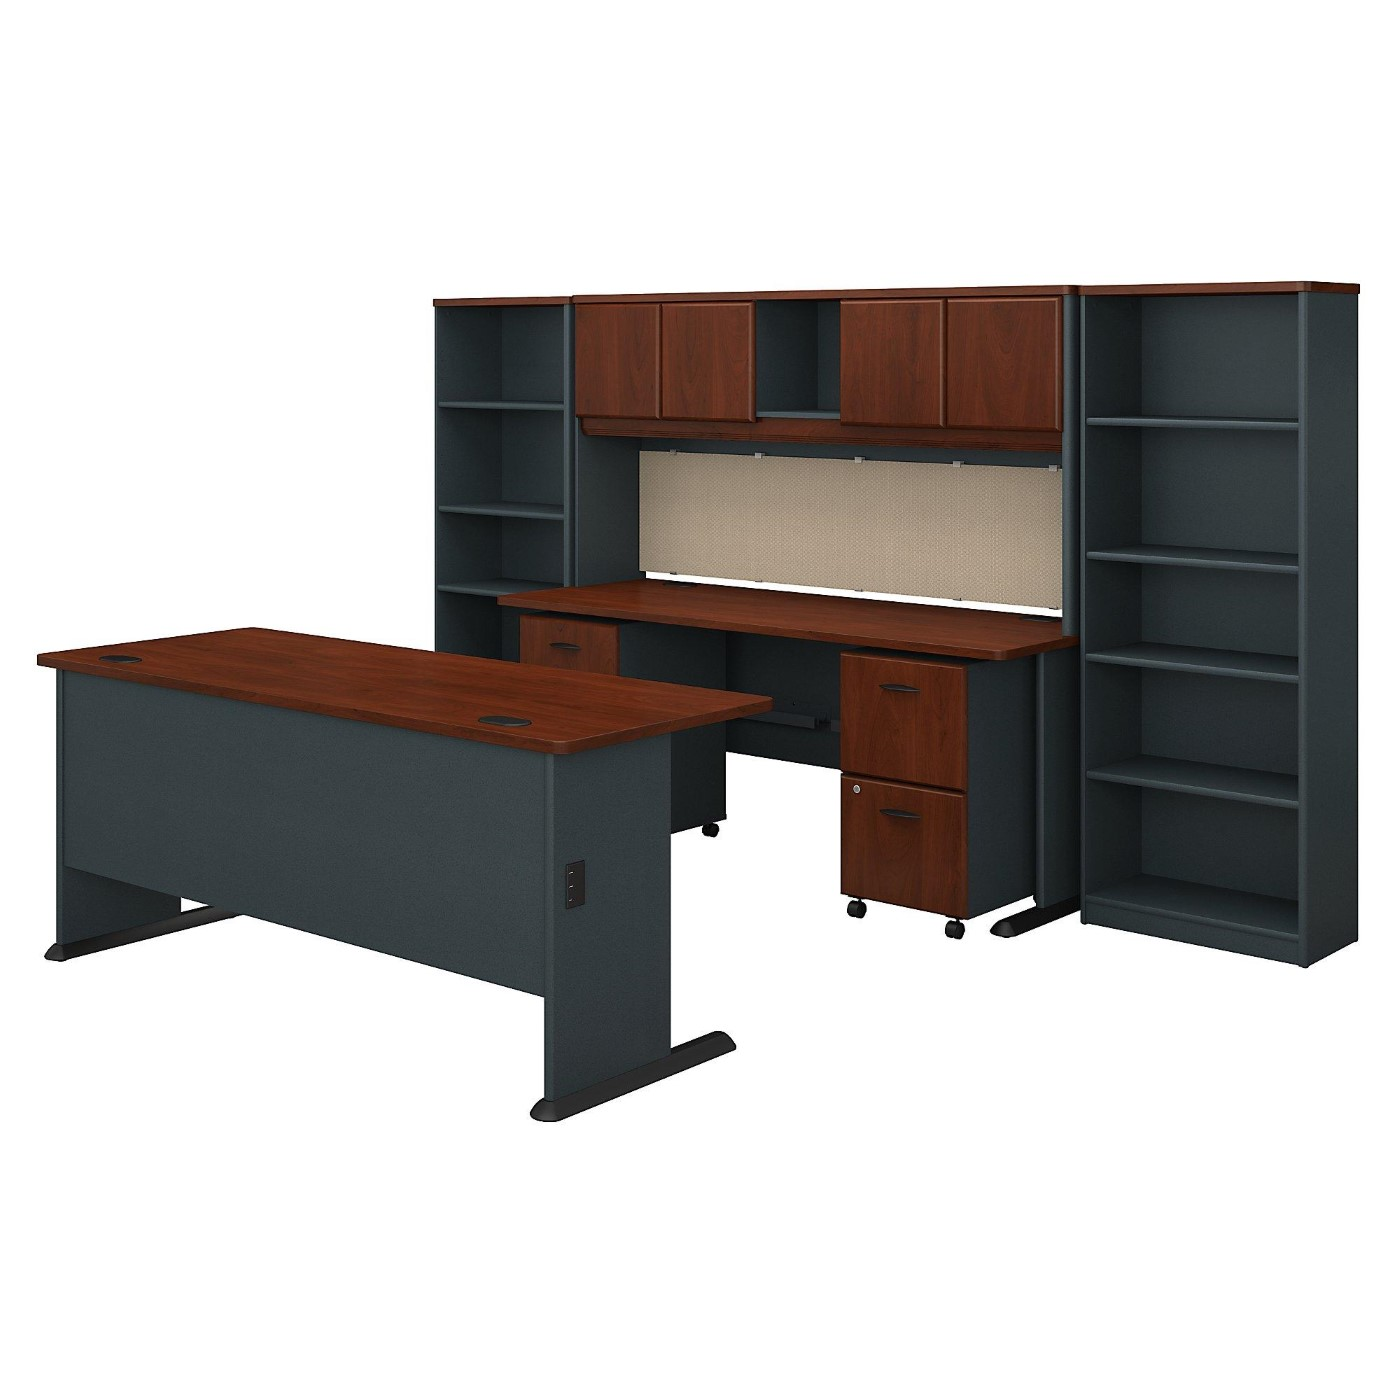 <font color=#c60><b>BUSH BUSINESS FURNITURE SERIES A 72W DESK WITH CREDENZA, HUTCH, BOOKCASES AND STORAGE. FREE SHIPPING</font></b></font>